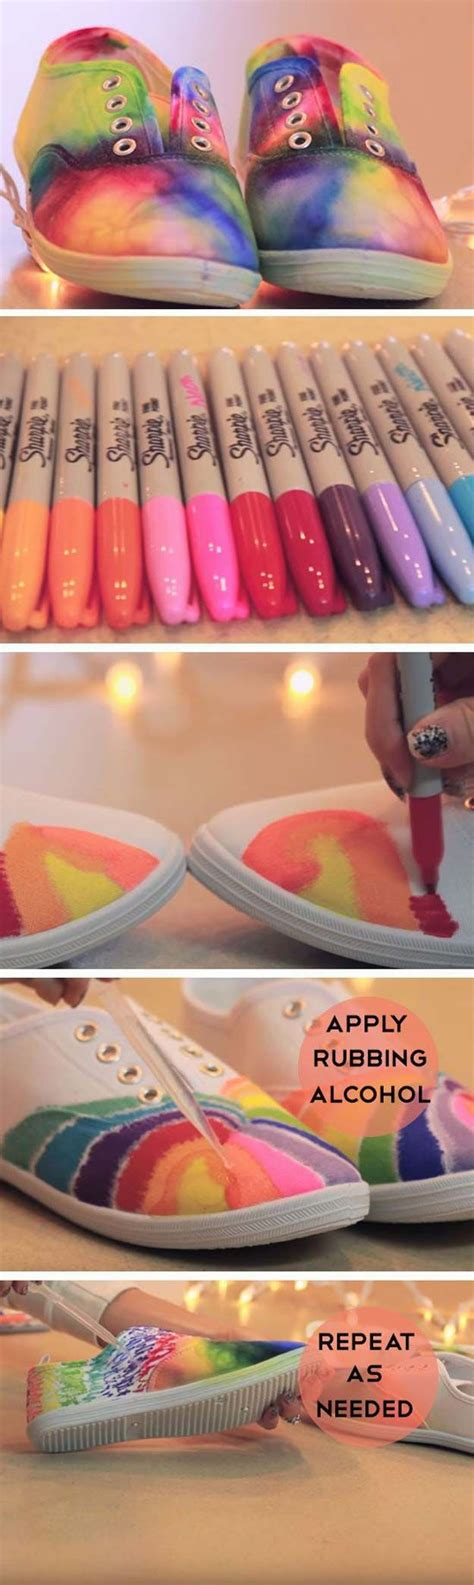 diy awesome crafts 25 best ideas about diy gifts on diy gift box make yourself and wrapping ideas